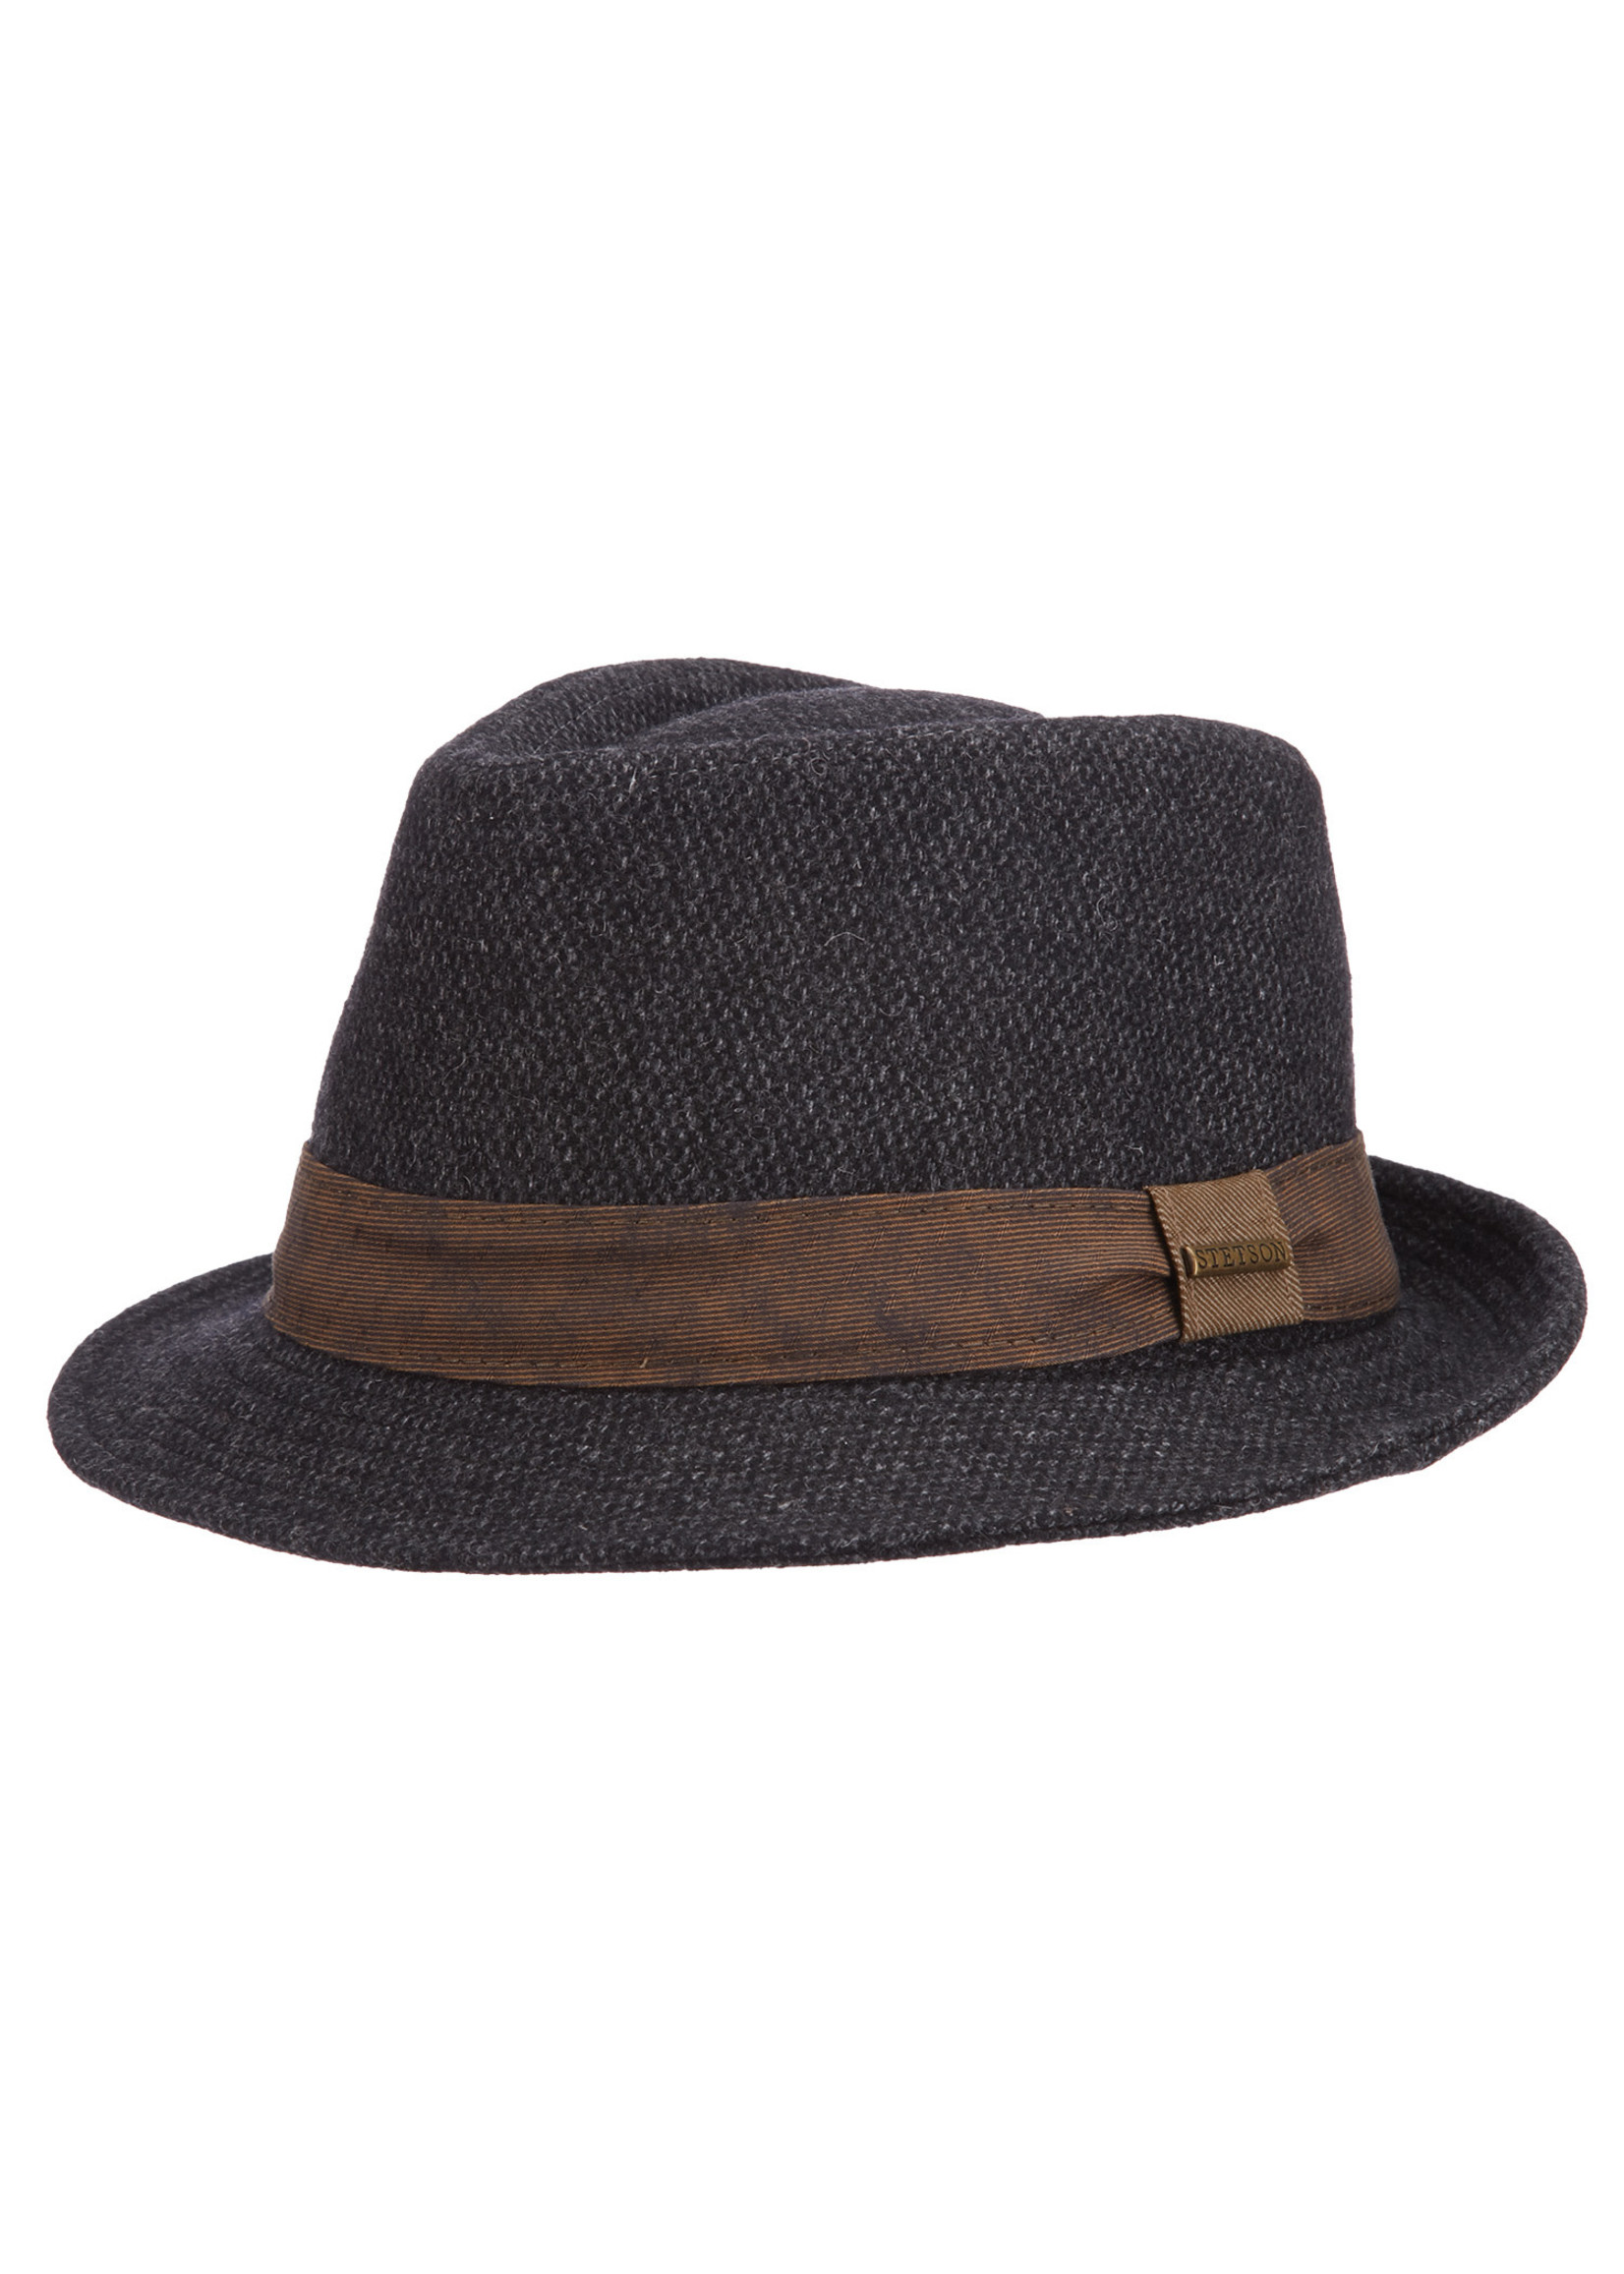 """Stetson The """"Crossgrain Fedora"""" by Stetson"""